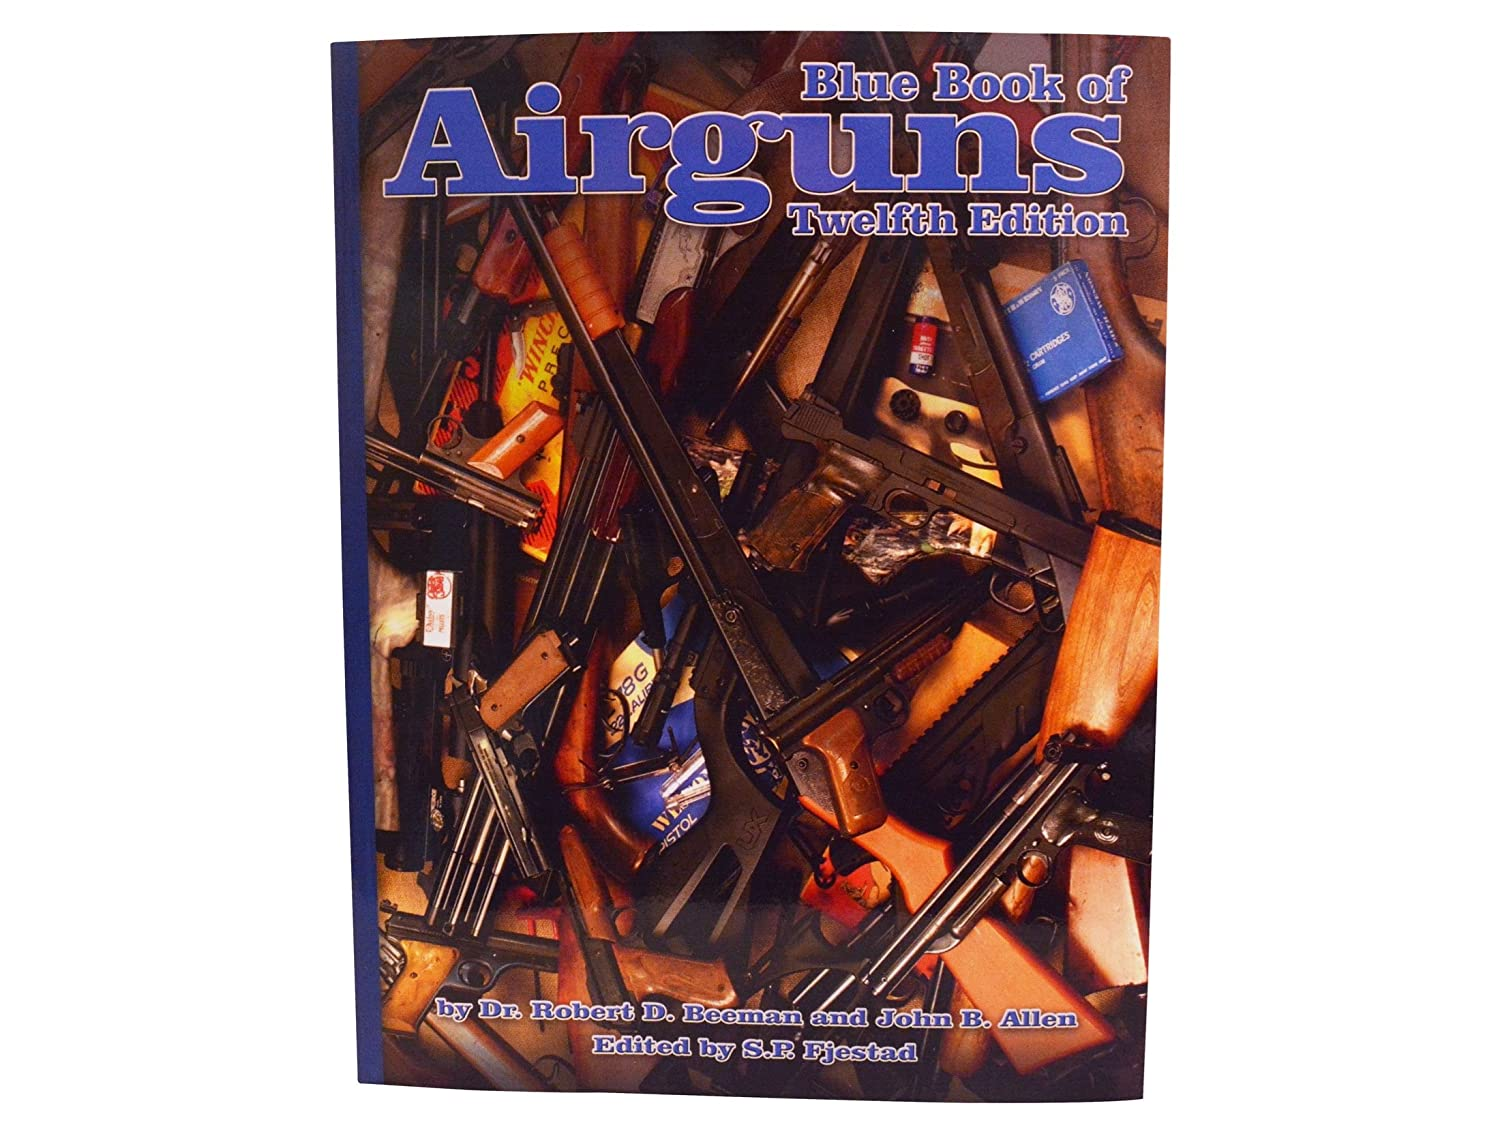 Blue Book of Airguns: 12th Edition Book by Dr. Robert Beeman and John Allen Blue Book Publications